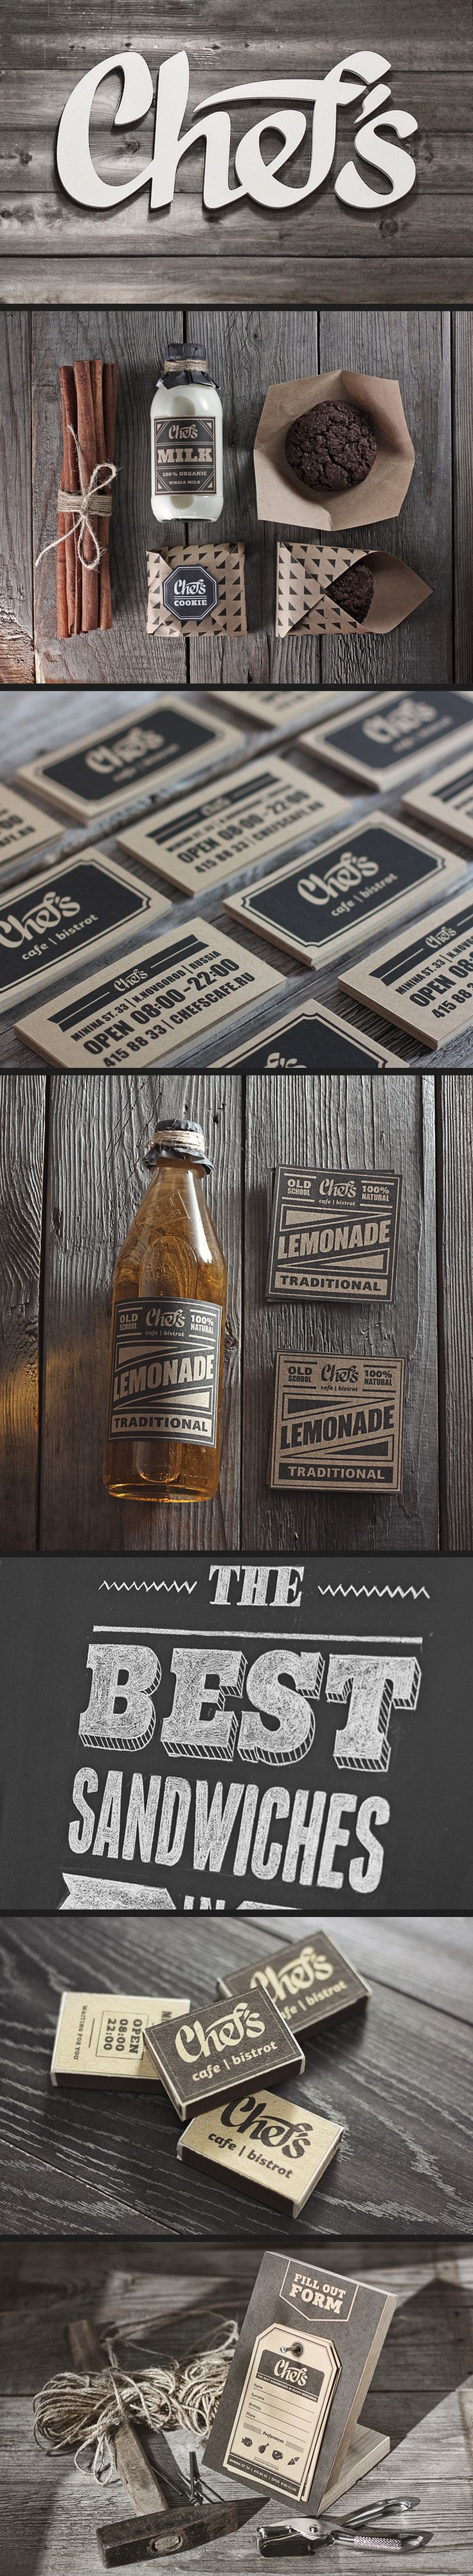 Chef's #packaging #branding #marketing PD